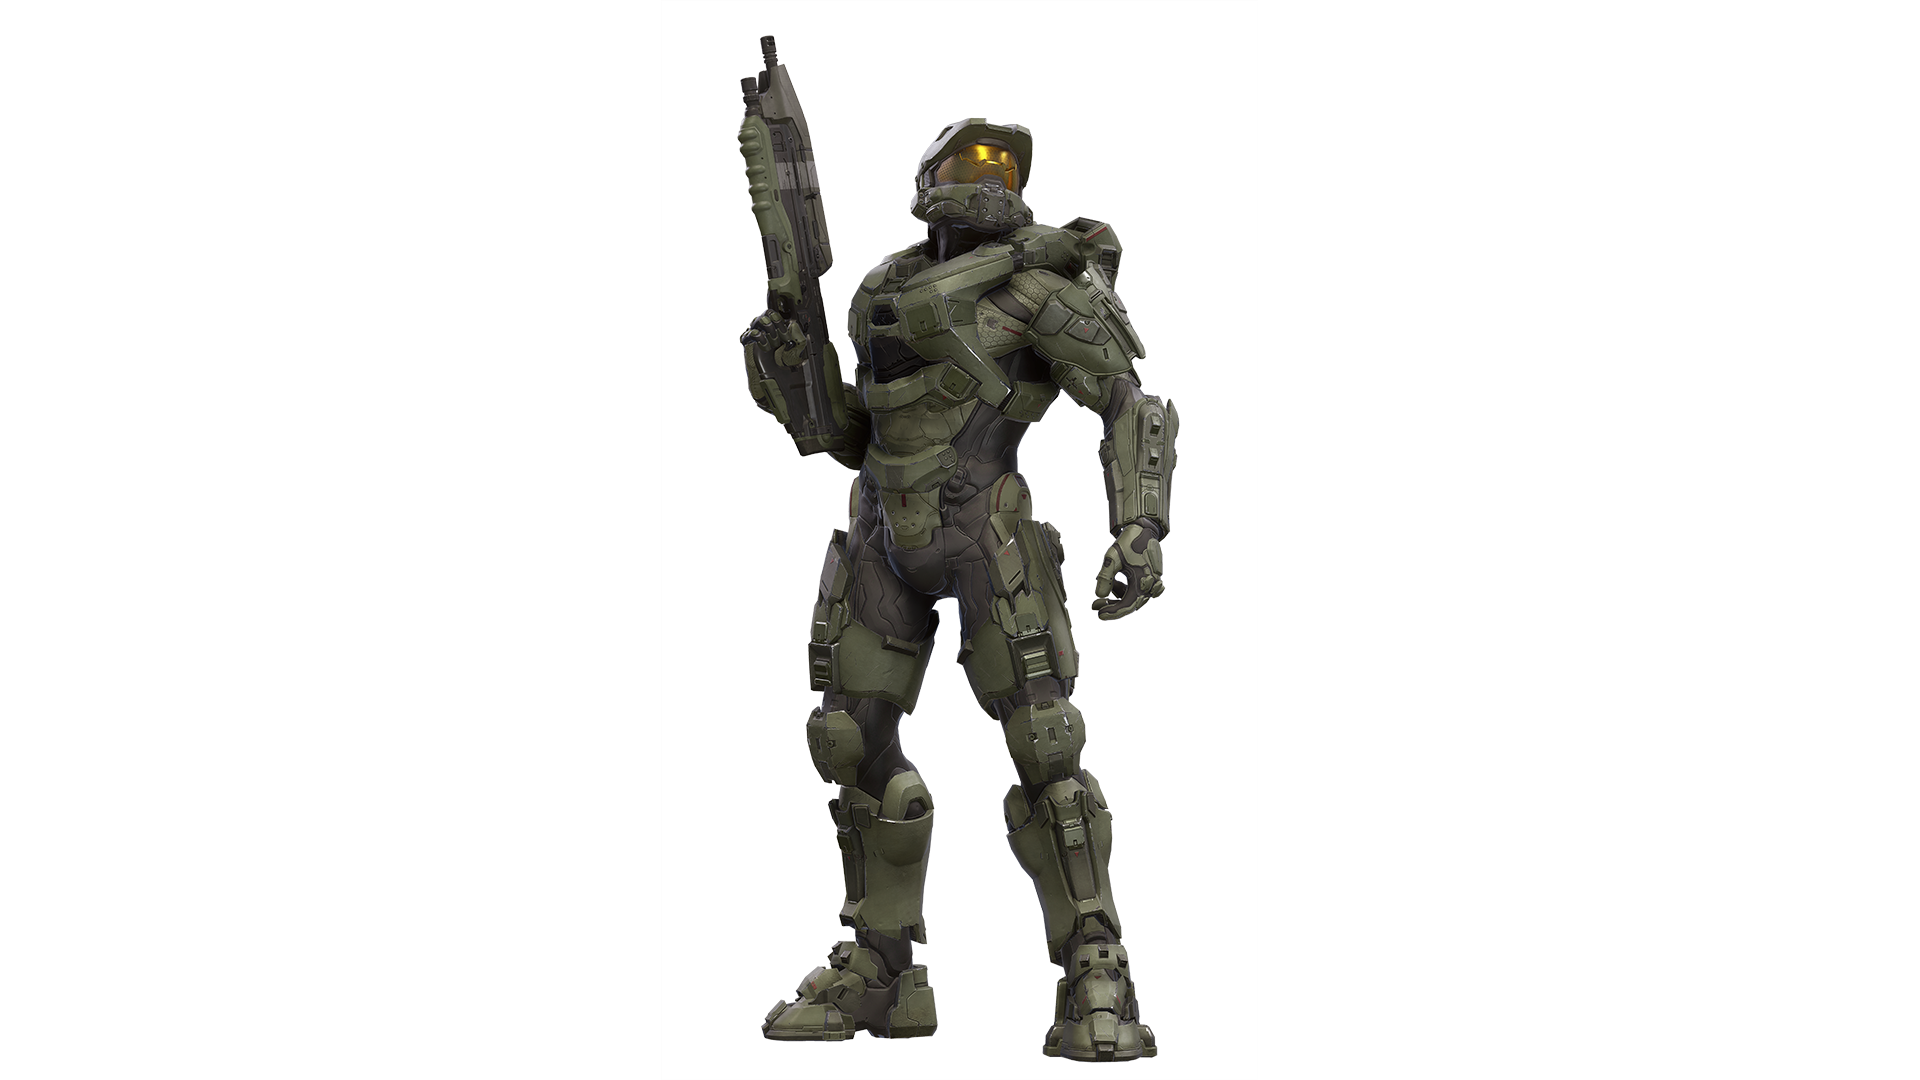 Master chief halo 5 png. Still doesn t